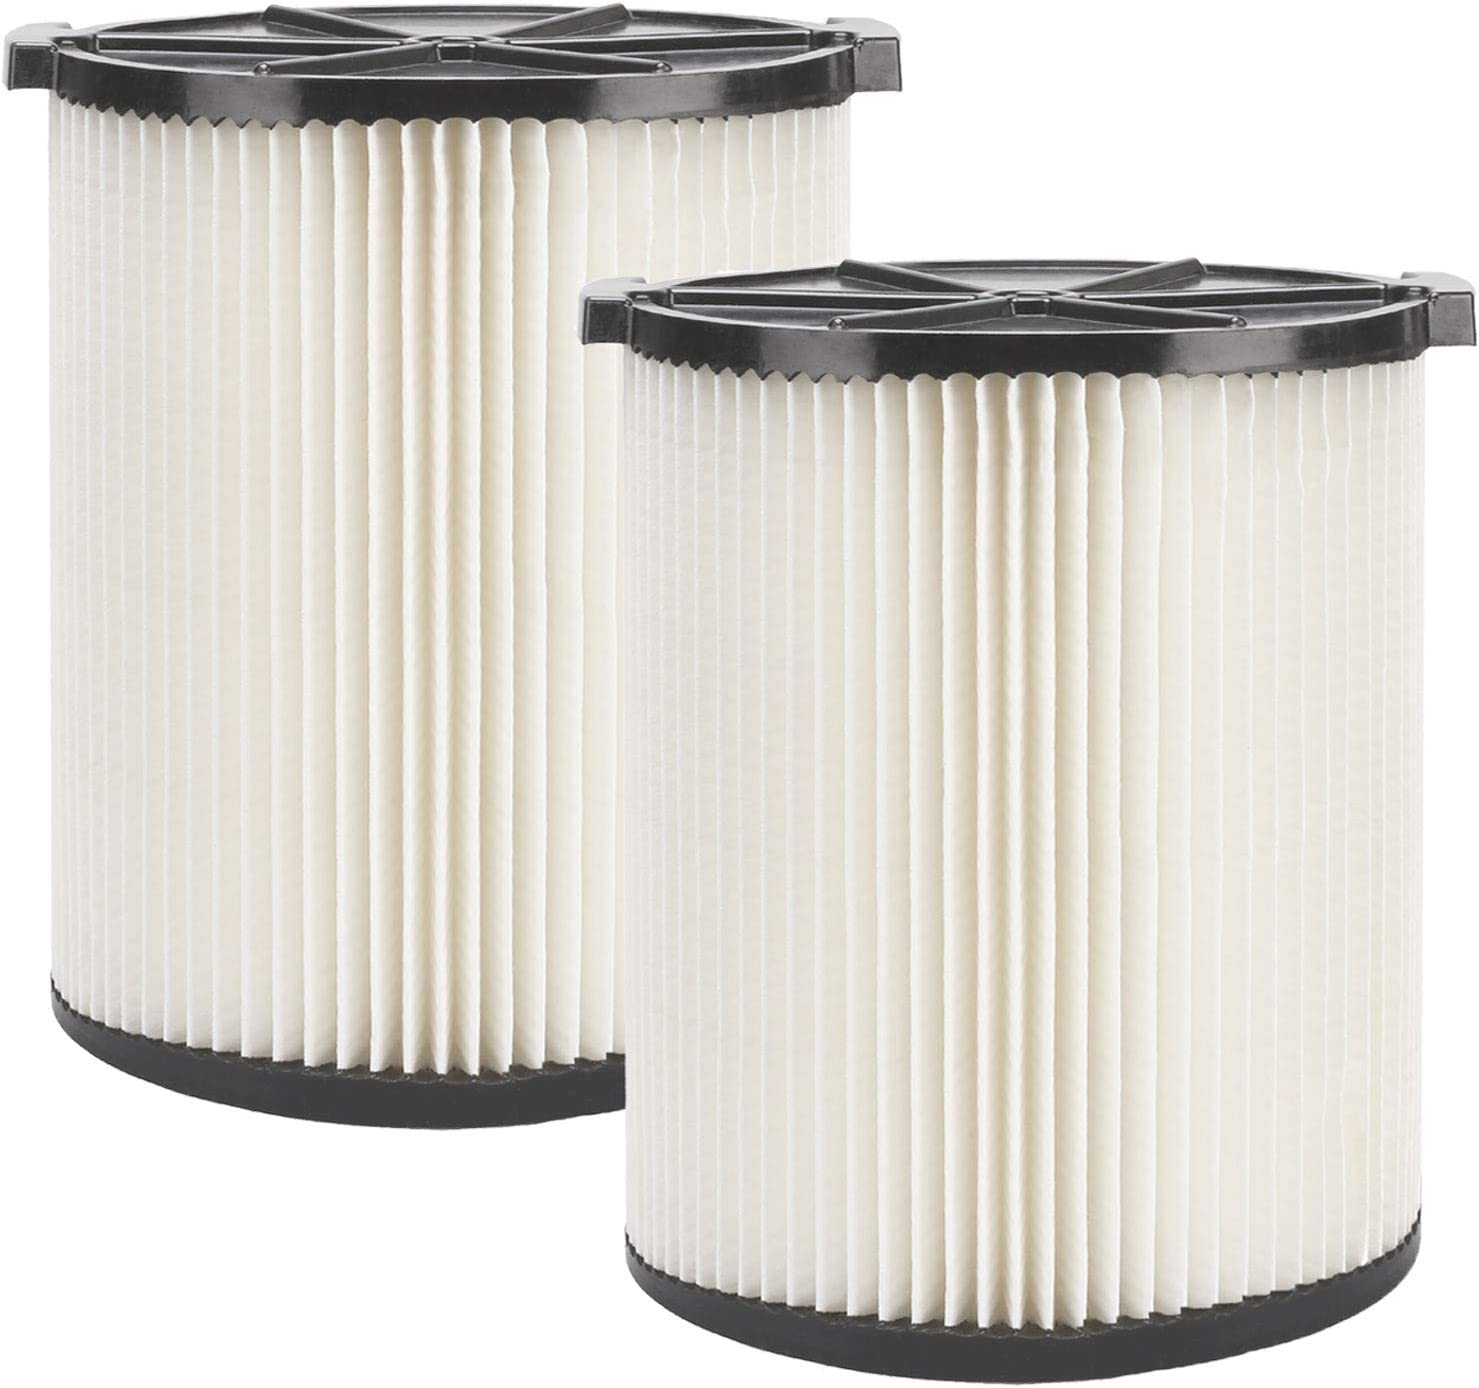 YUEFENG VF4000 Replacement Filter for Ridgid Wet Dry Vac 5 to 20-Gallon 6-9 Gal - Filter for Husky Vacuum WD5500 WD0671 RV2400A RV2600B (2 Pack)